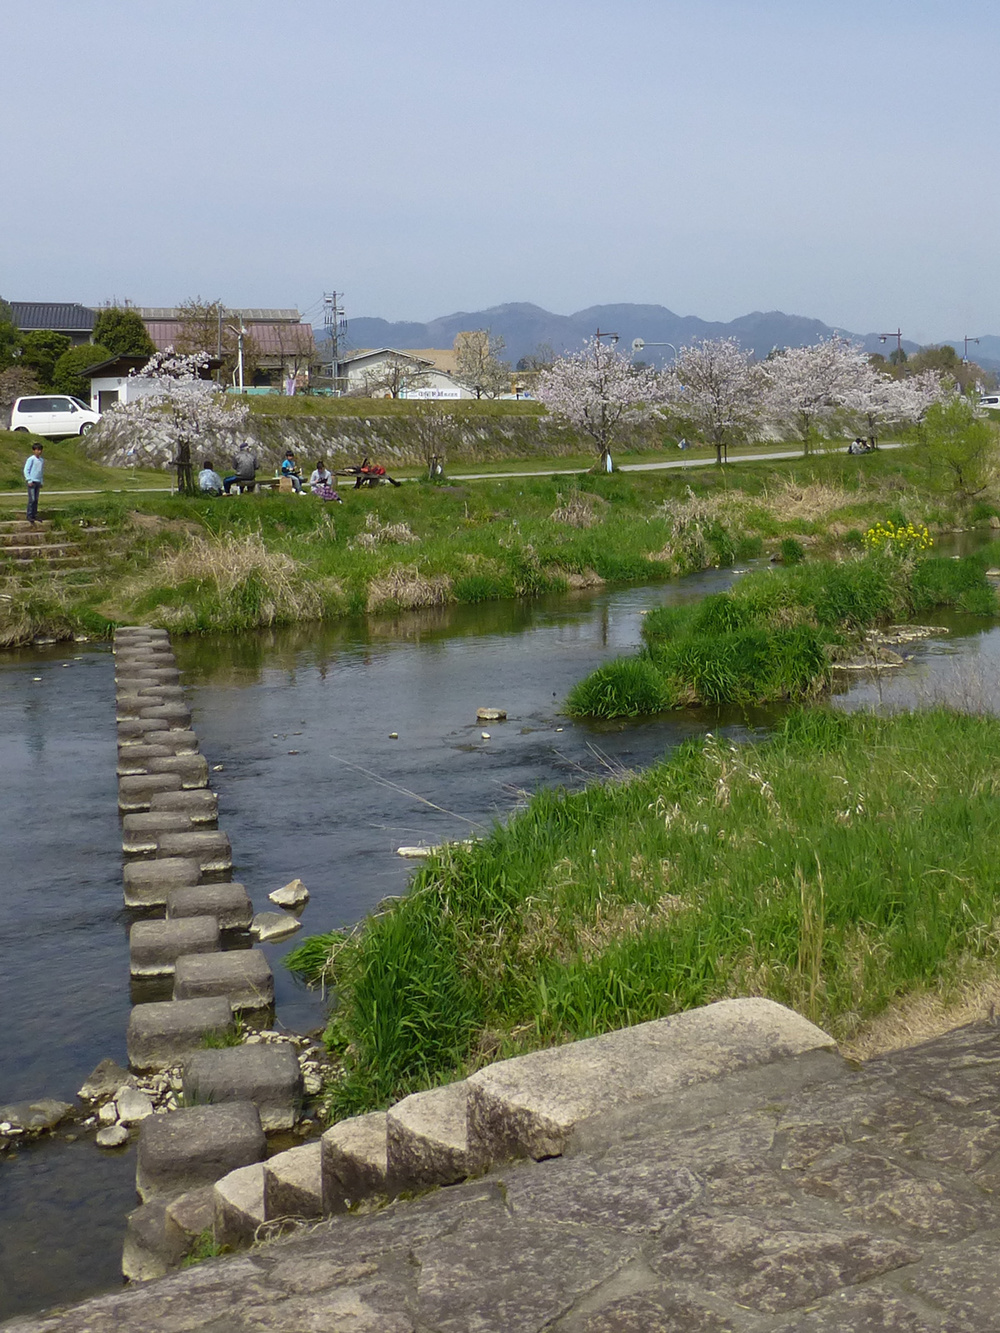 We enjoyed hopping over these stepping stones to reach the other side of the river bank.